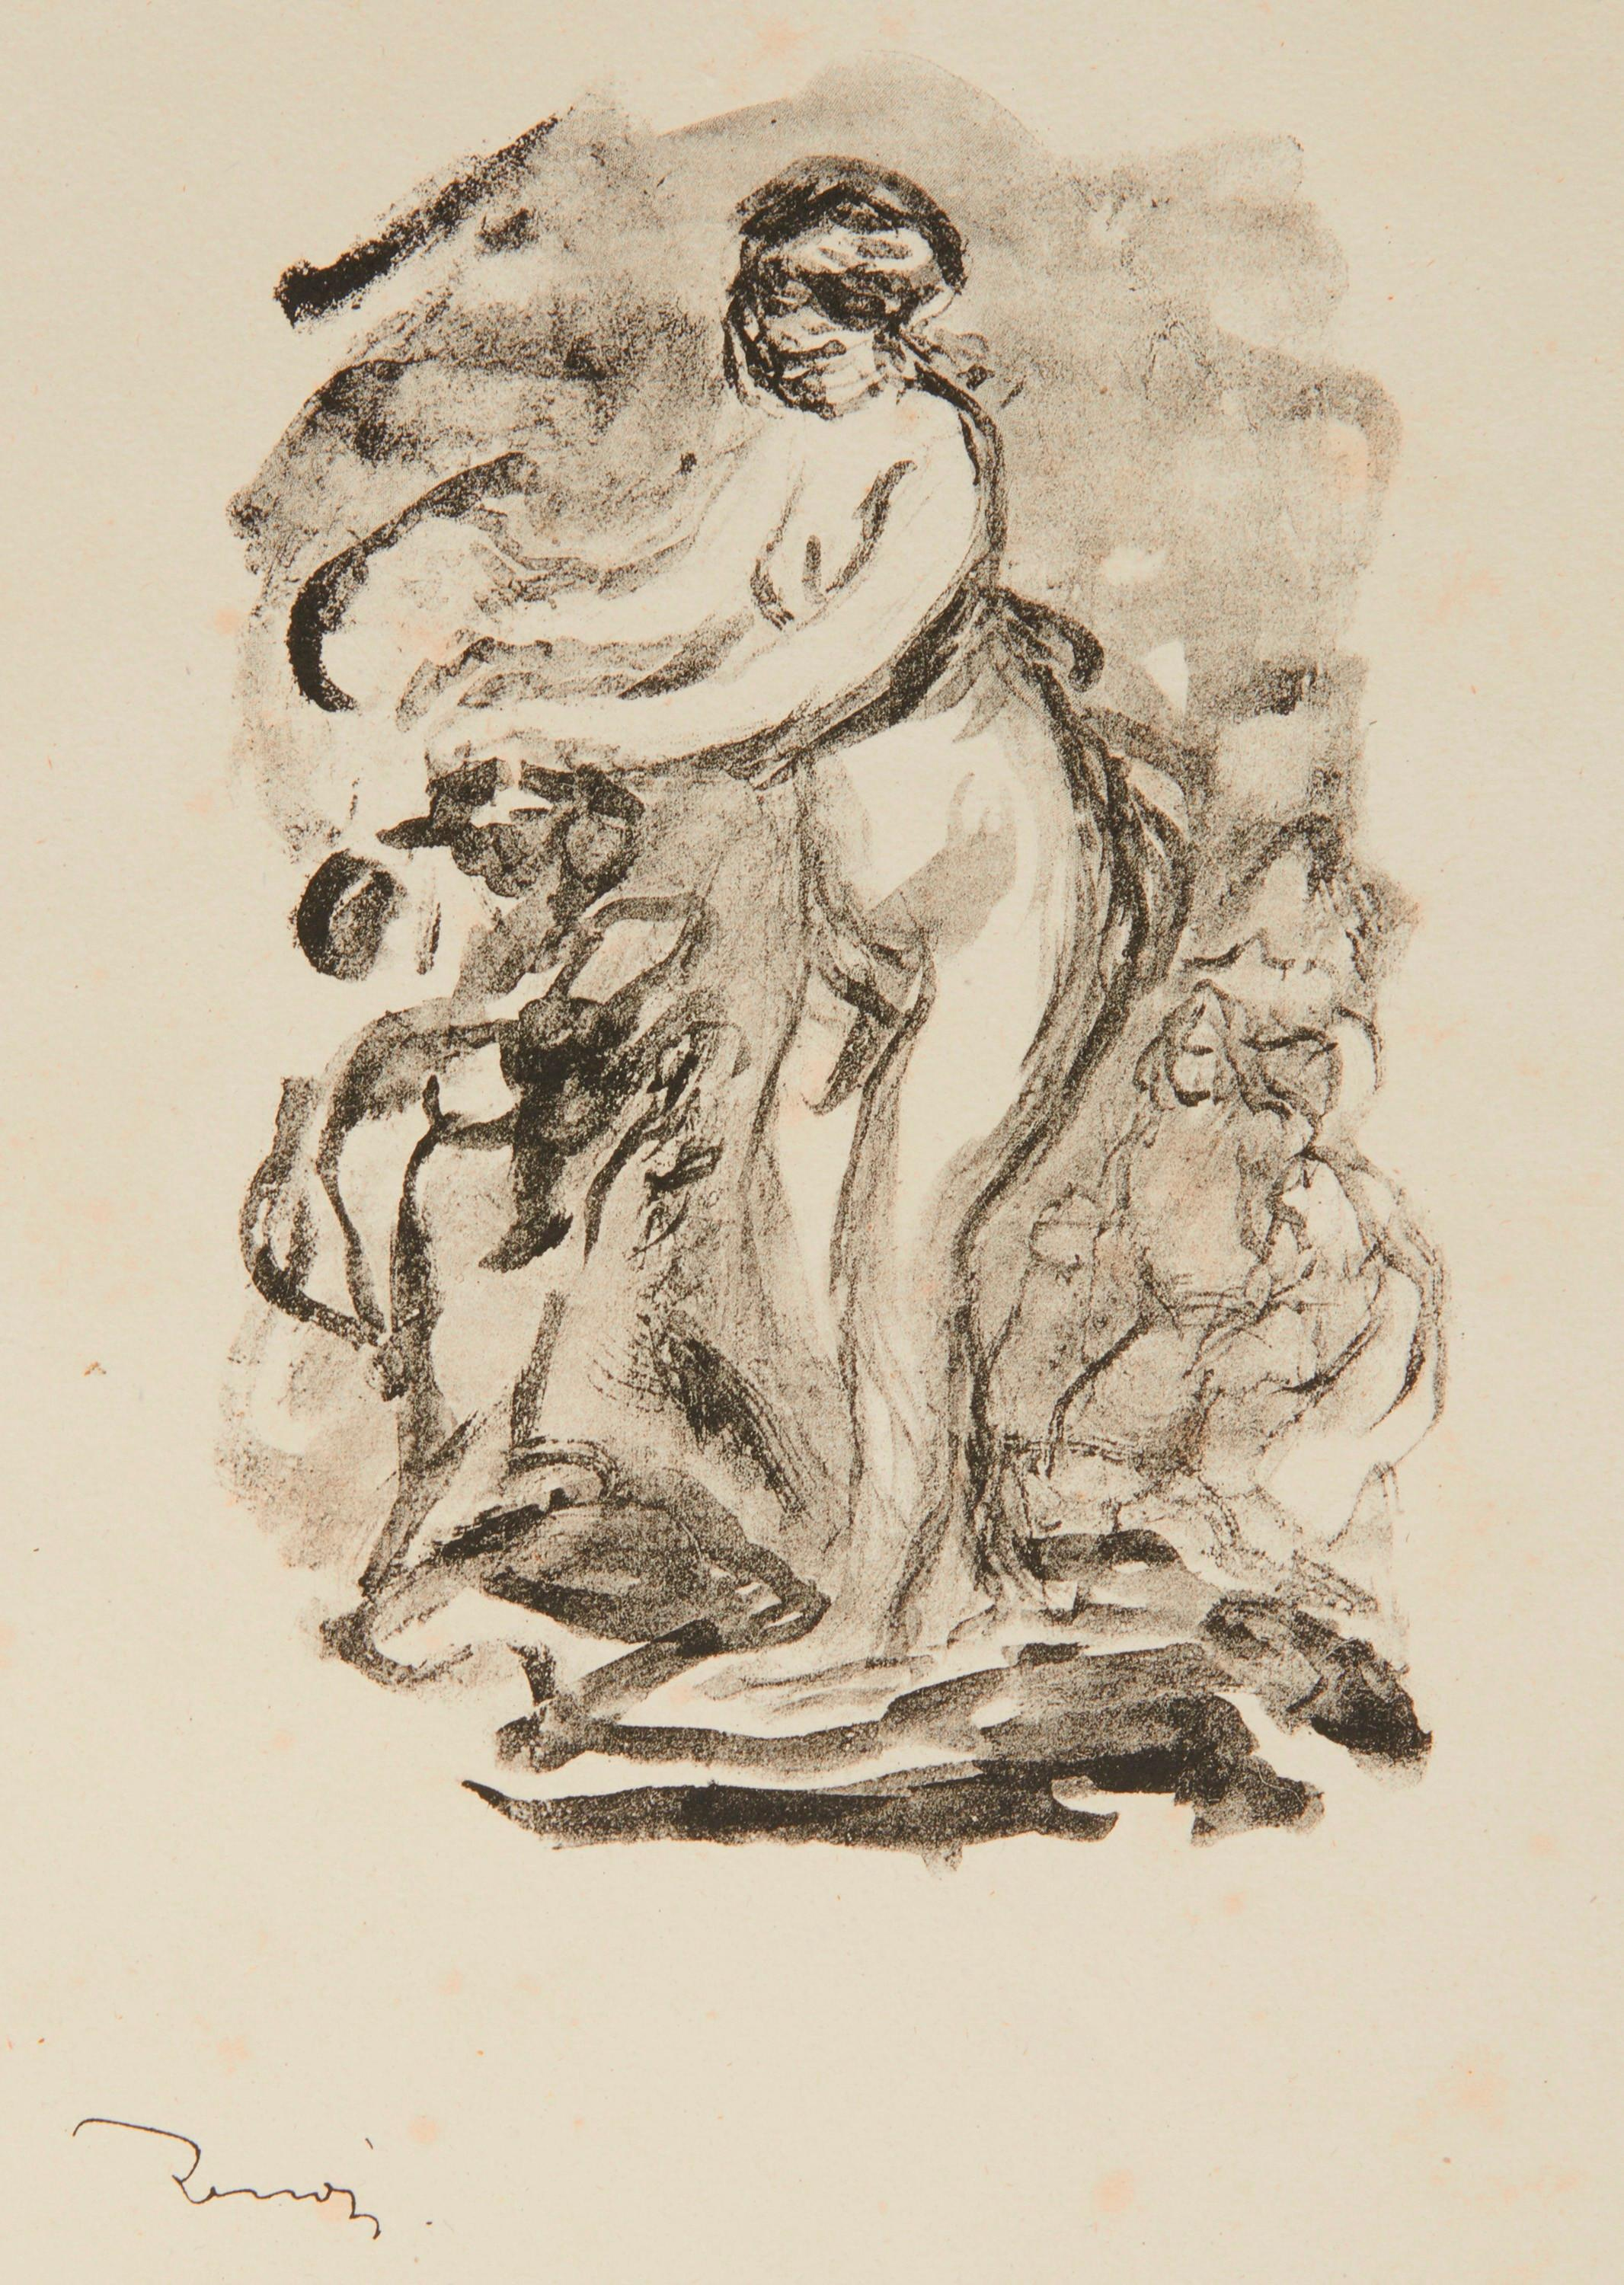 PIERRE AUGUSTE RENOIR, (French, 1841-1919), Femme au cep de vigne (Woman by the Grapevine), lithograph, image: 6 3/4 x 4 3/4 in., sheet: 13 x 10 in.